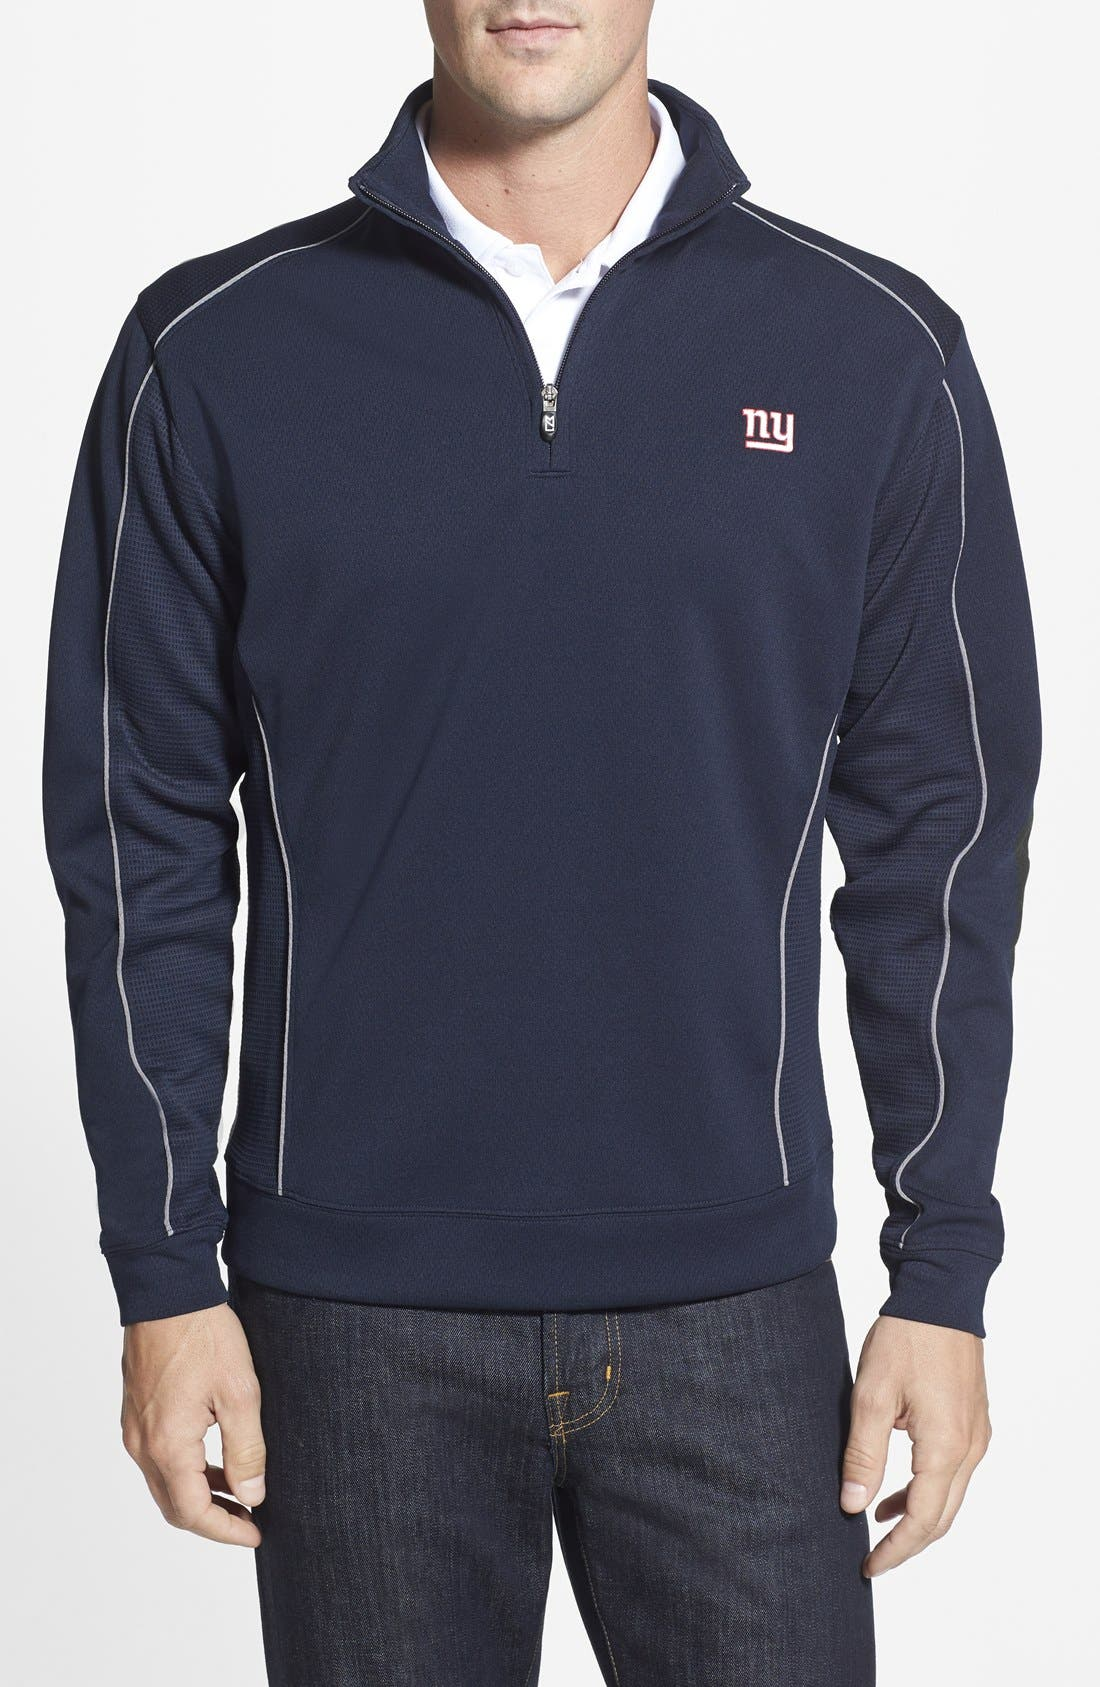 Cutter & Buck 'New York Giants - Edge' DryTec Moisture Wicking Half Zip Pullover (Big & Tall)